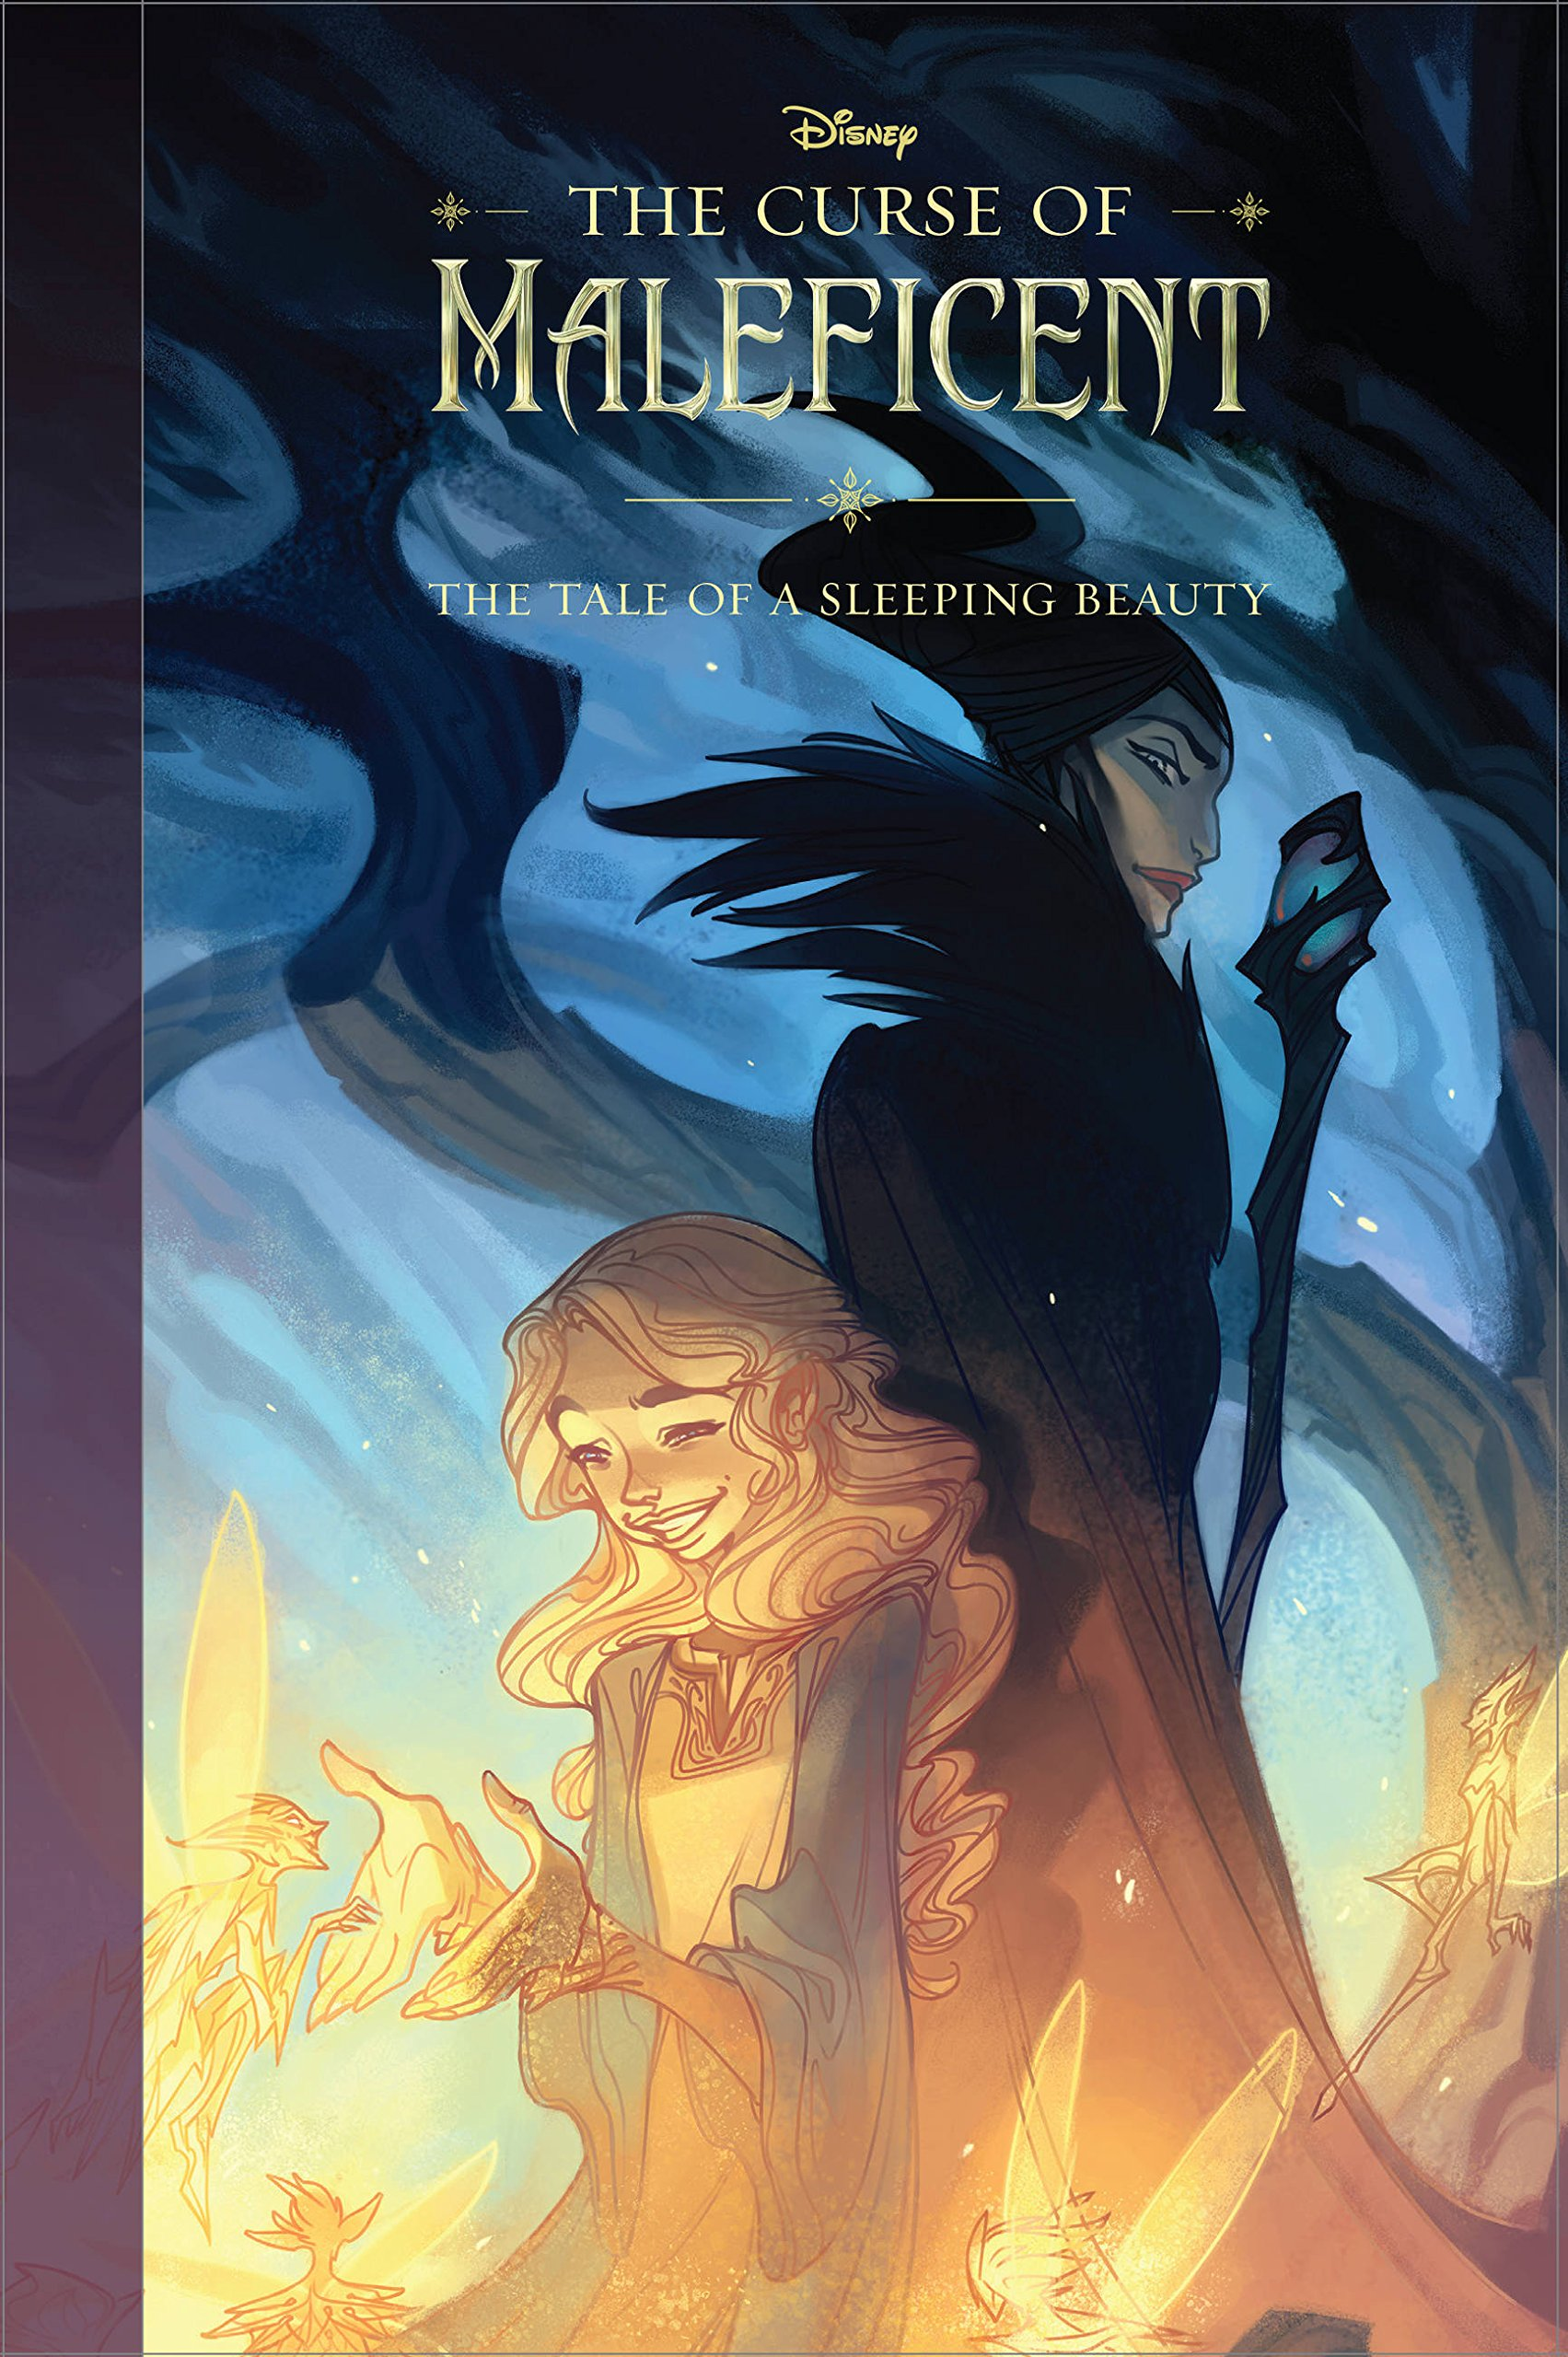 The Curse of Maleficent: The Tale of A Sleeping Beauty by Elizabeth Rudnick